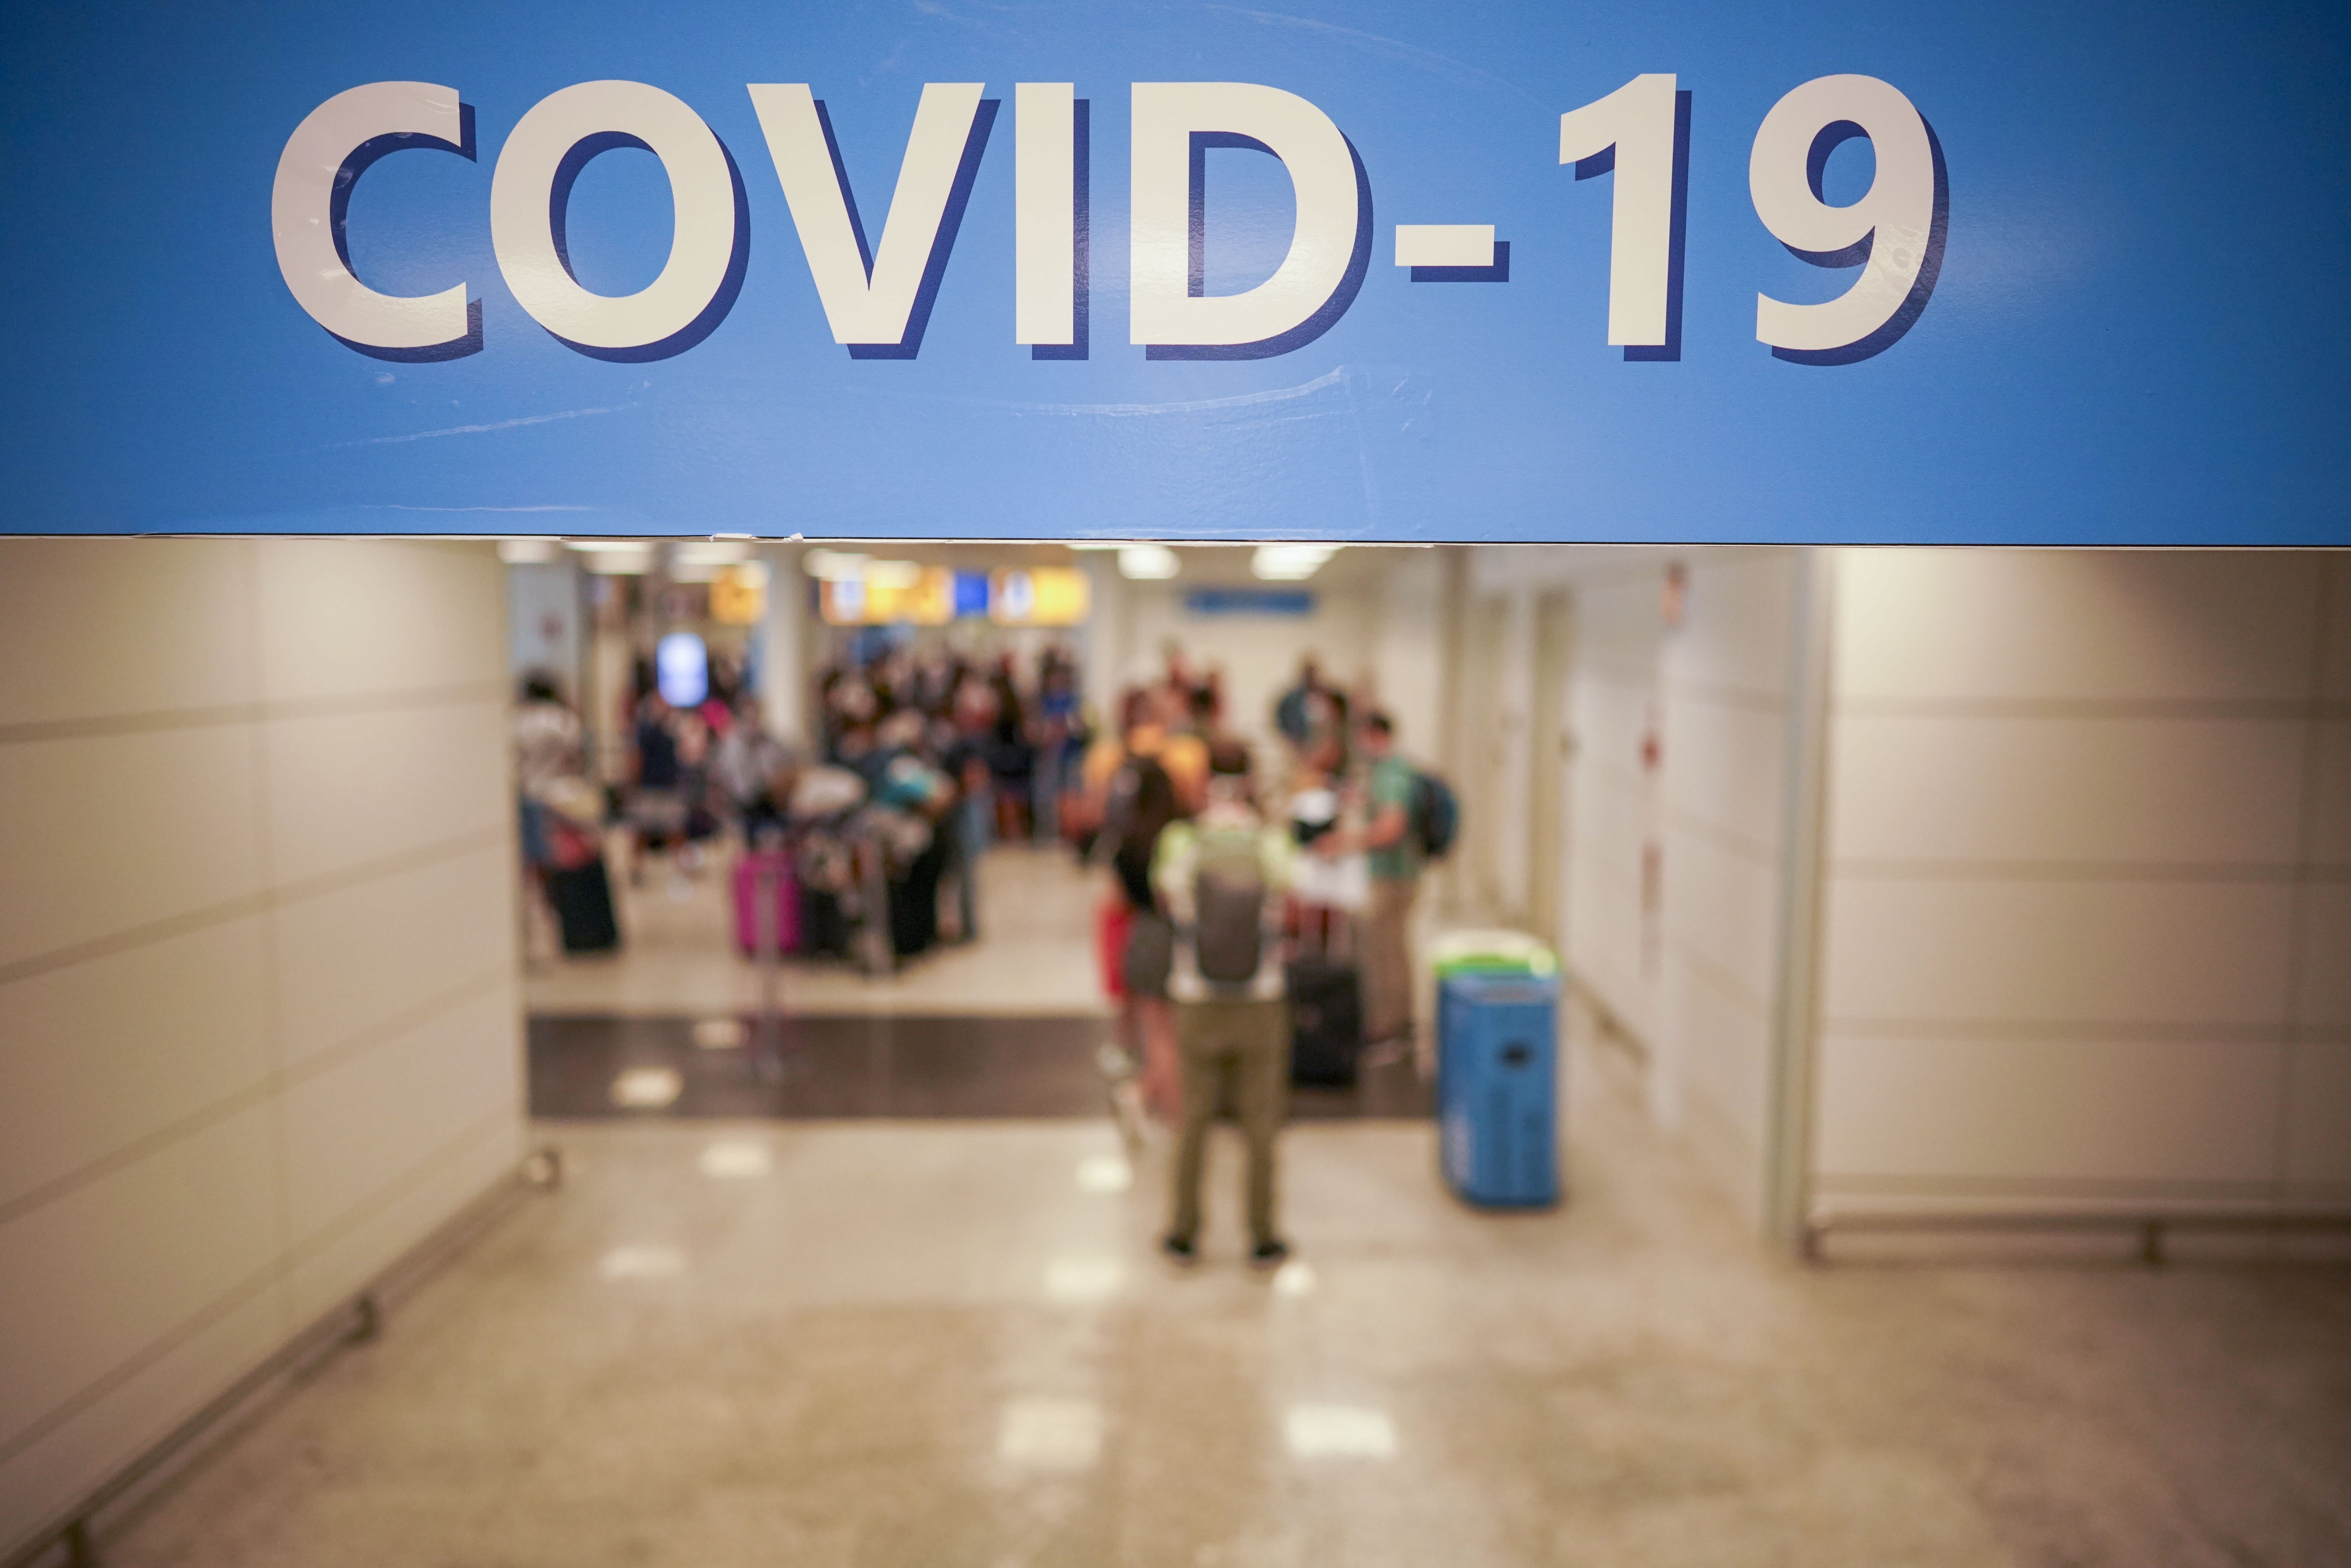 Vacationers arriving in Rome from four Mediterranean countries line up with their suitcases at Rome's Leonardo da Vinci airport to be immediately tested for COVID-19, Sunday, Aug.16, 2020. Italy's health minister issued an ordinance requiring the tests for all travelers arriving in Italy from Croatia, Greece, Malta or Spain. (AP Photo/Andrew Medichini)